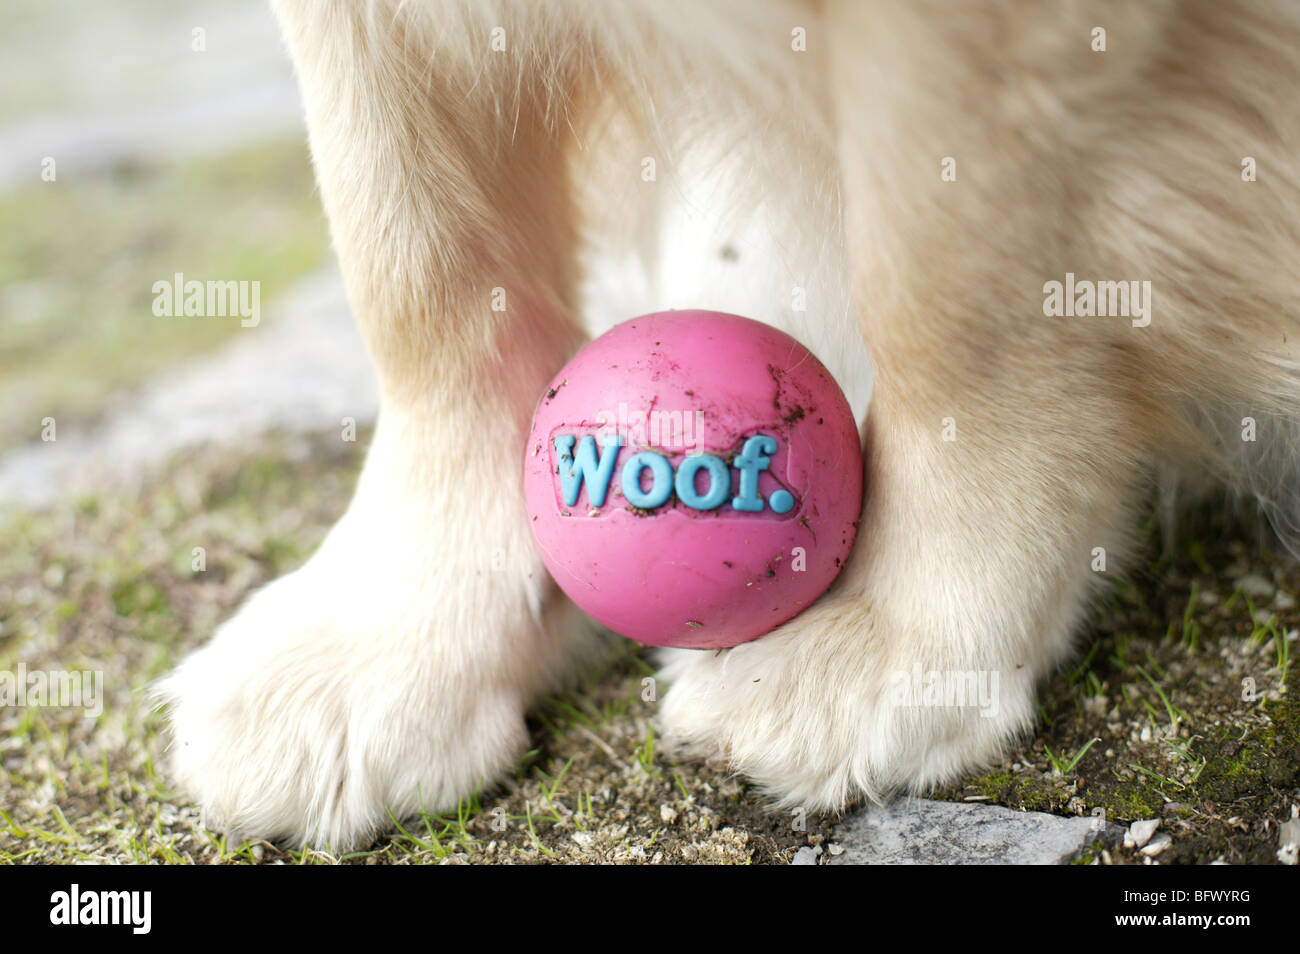 close-up of golden retriever's front paws with pink ball - Stock Image